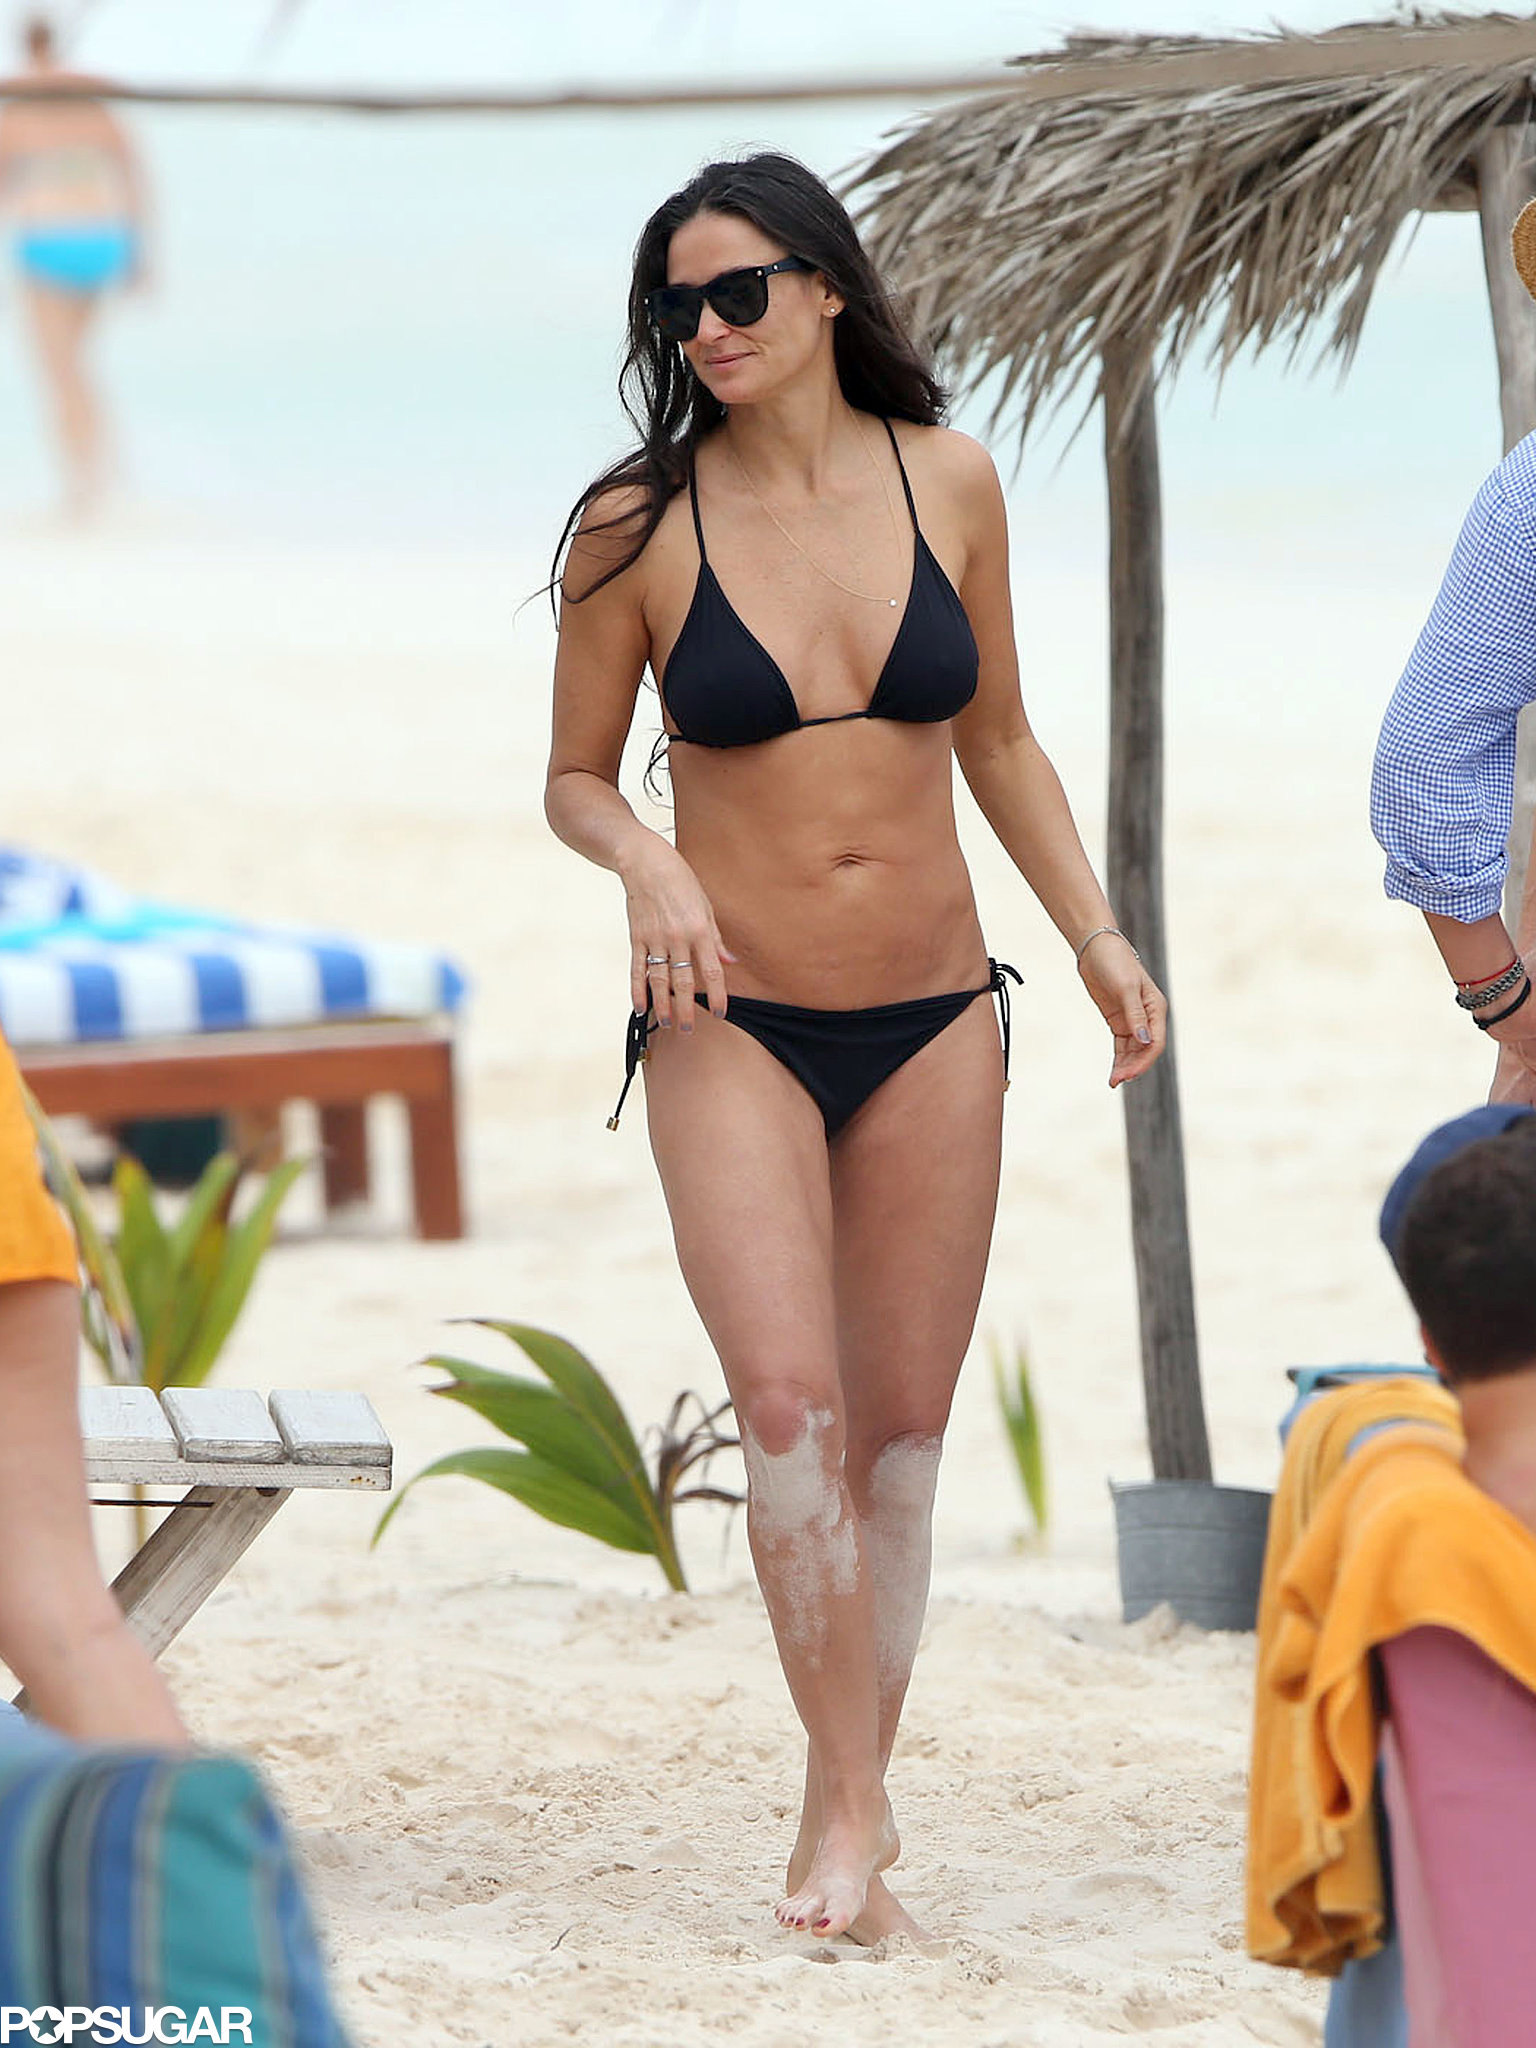 Demi Moore flaunted her fit figure while spending the holidays in Cancun with her daughters and new boyfriend this week.